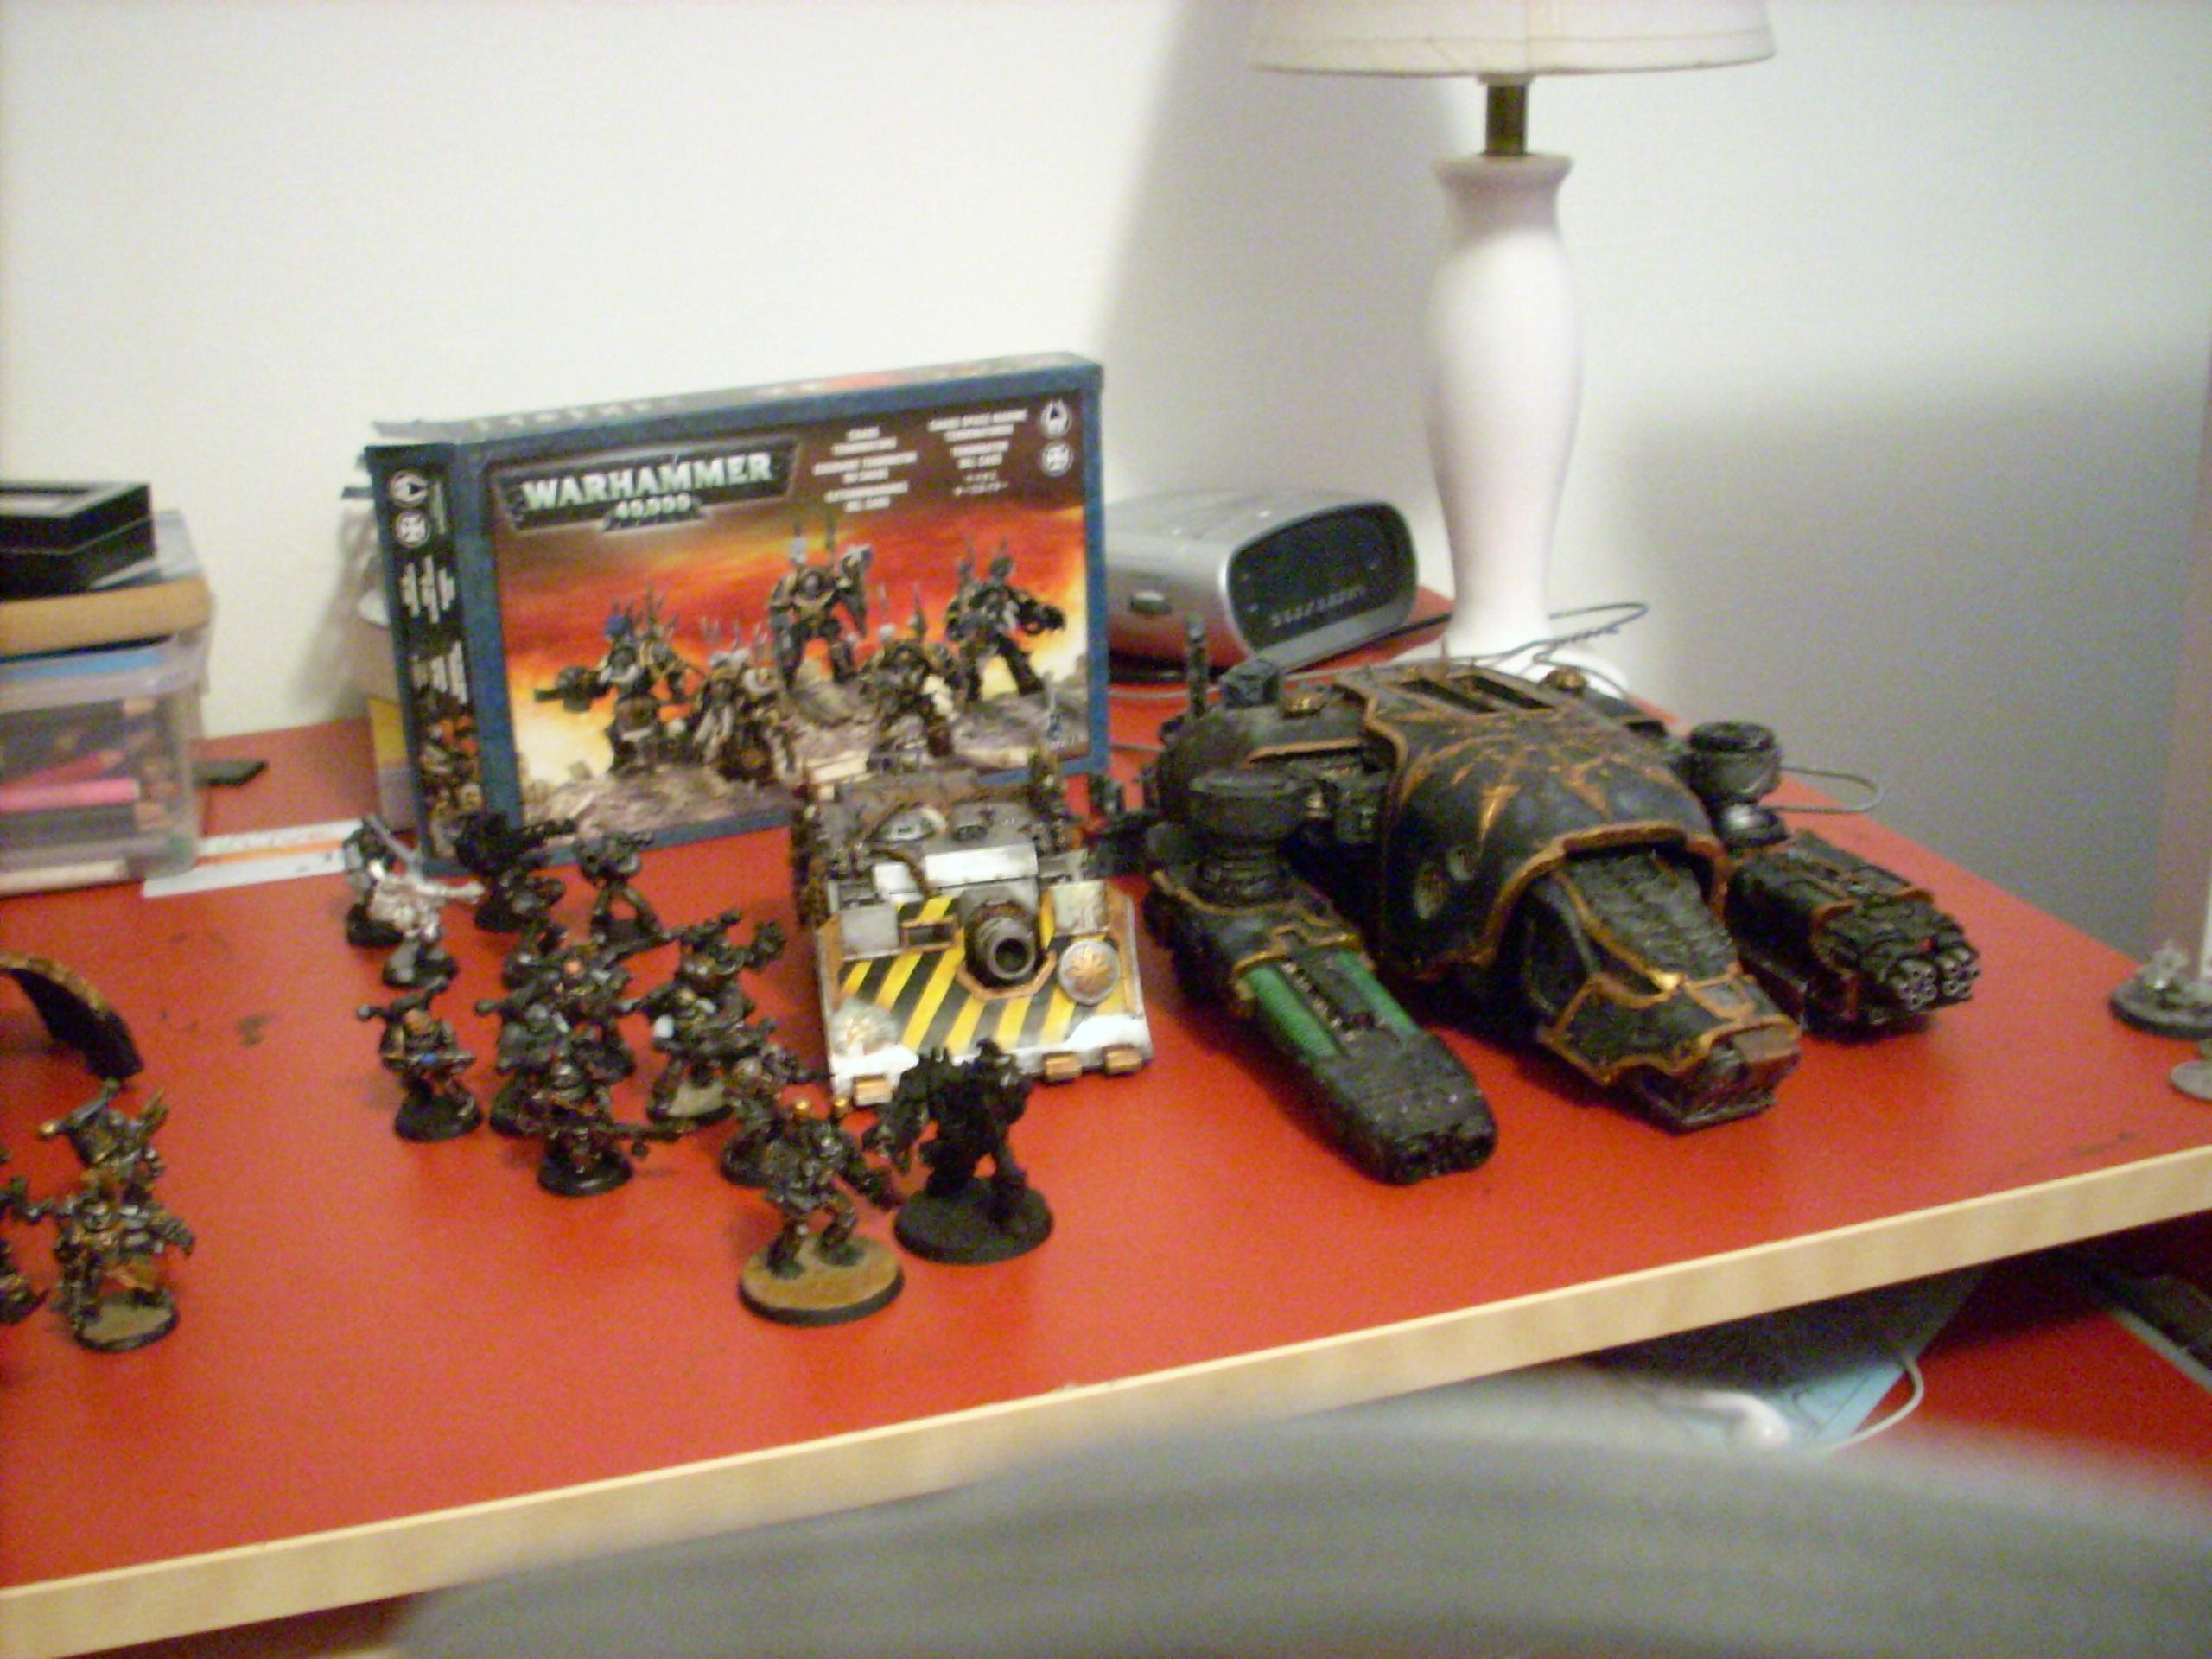 Chaos, Chaos Space Marines, Comparison, Iron Warriors, Warhammer 40,000